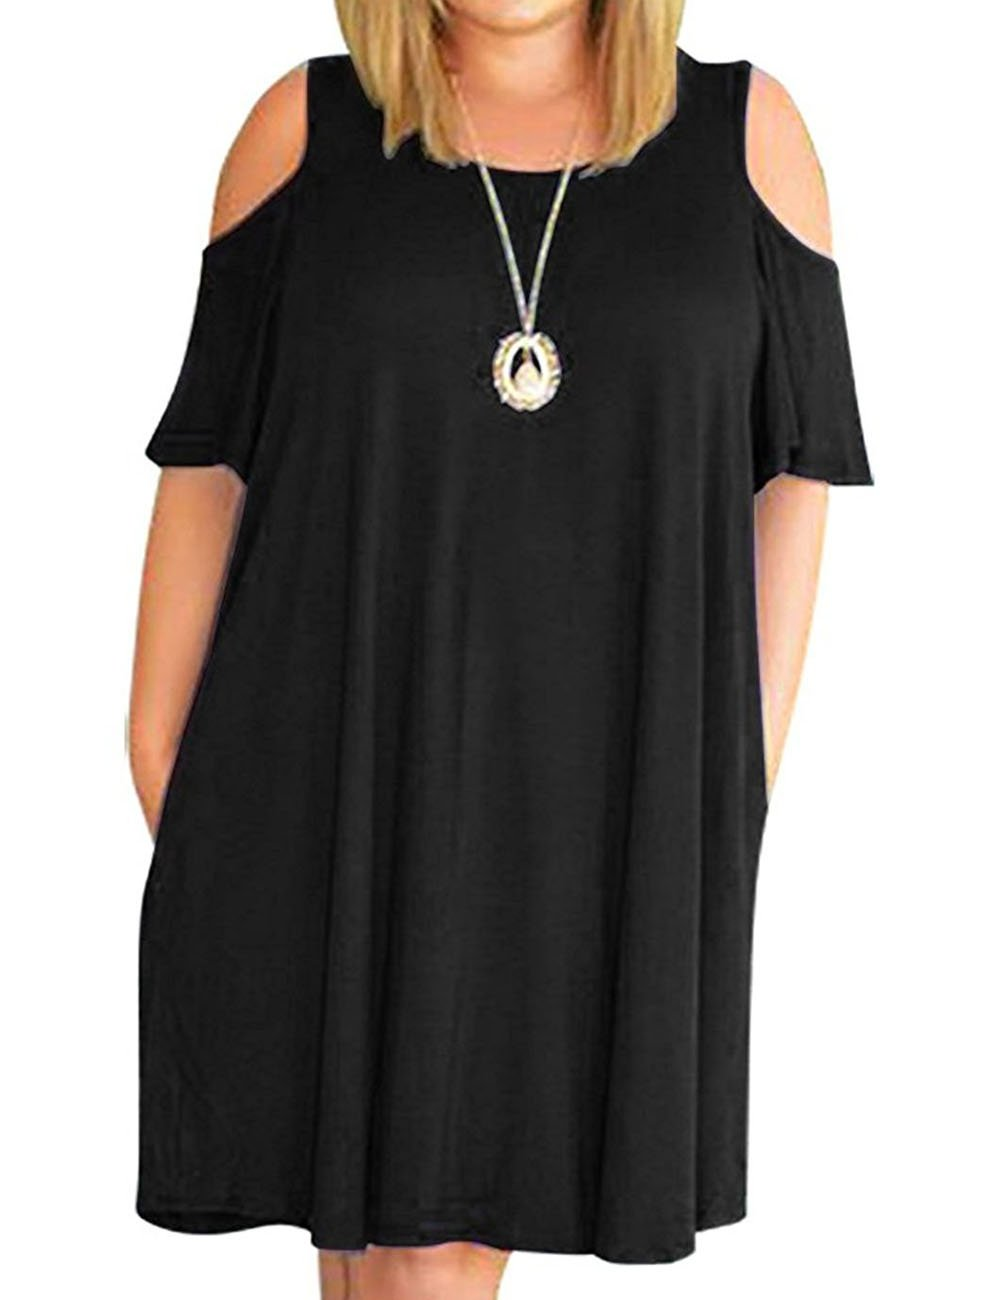 Kancystore Women's Plus Size Dress Summer Casual T-Shirt Cold Shoulder  Dress Black 5X